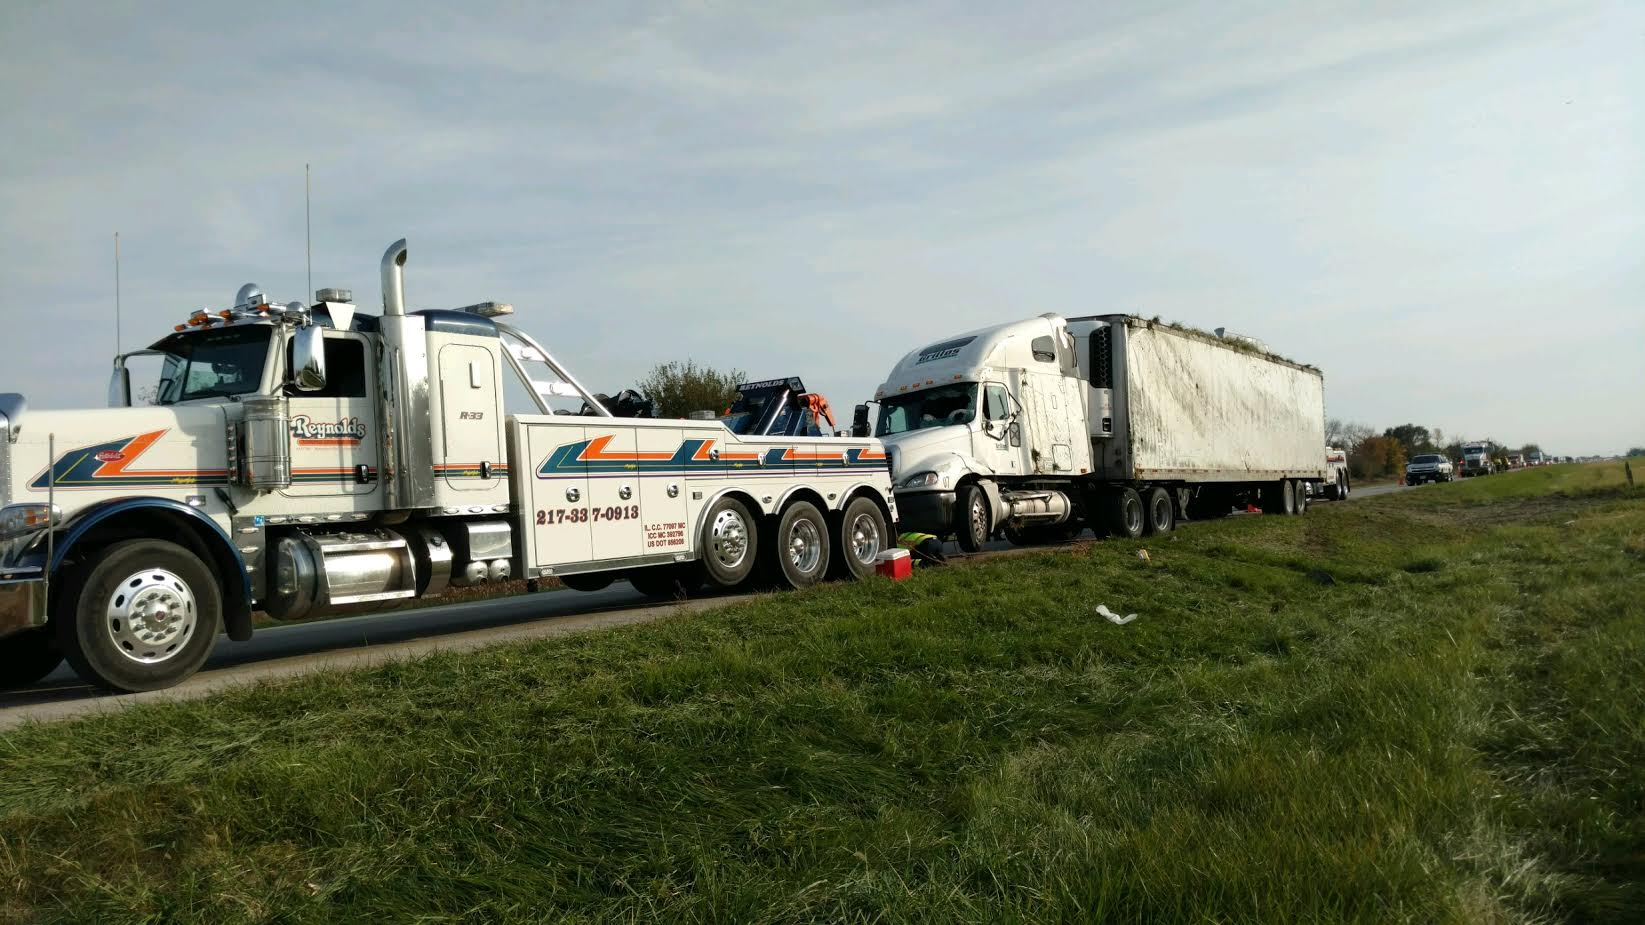 Reynolds Towing Service image 37